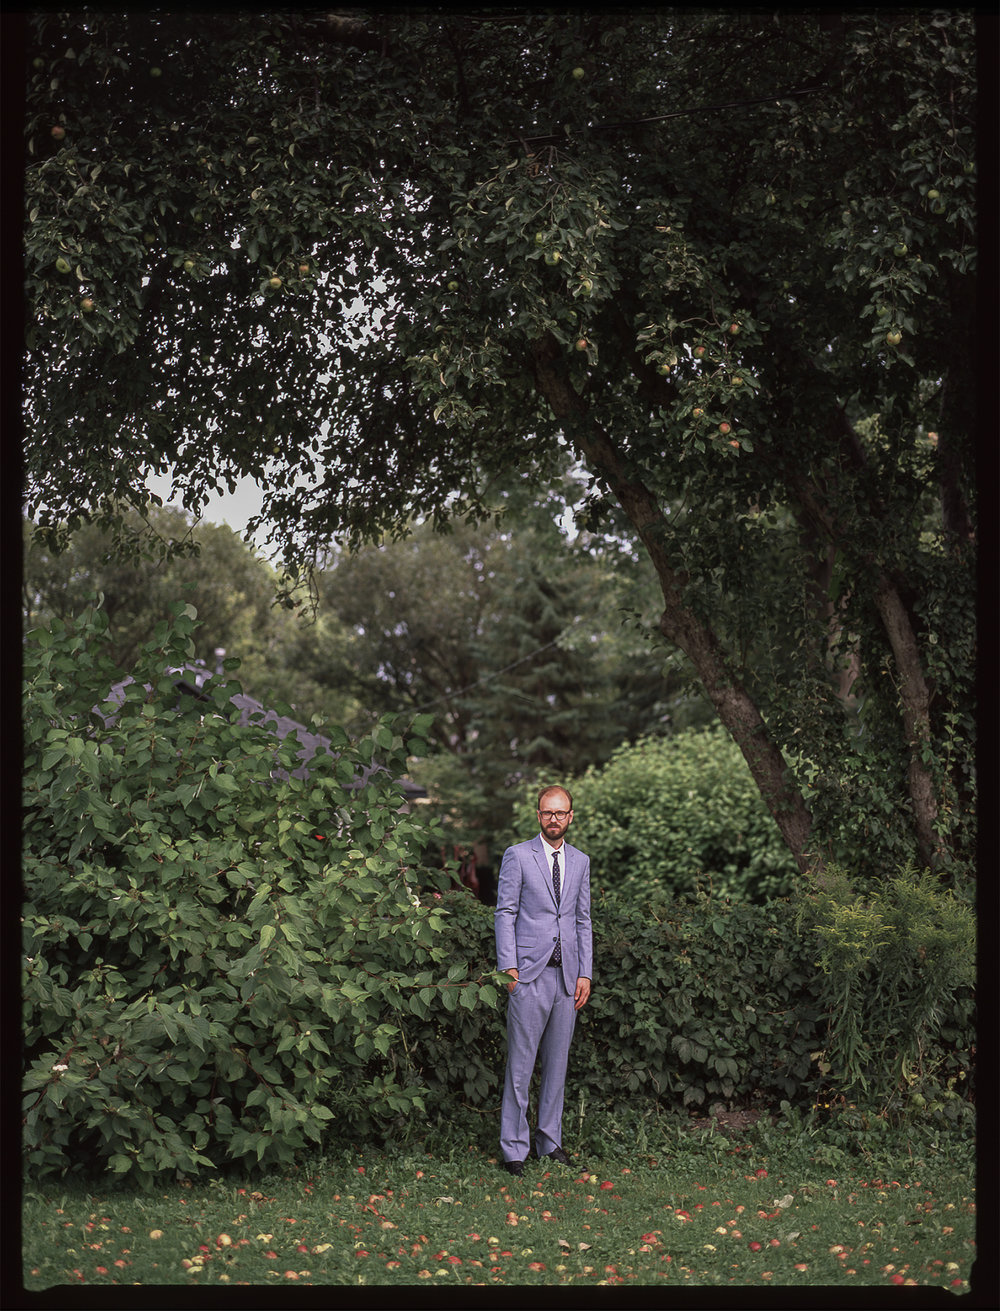 Best-Analog-Medium-format-film-wedding-photographers-Toronto-Elopement-photography-Toronto-Island-Cafe-Summer-Wedding-Portra-160-Medium-Format-Portrait-of-Groom.jpg